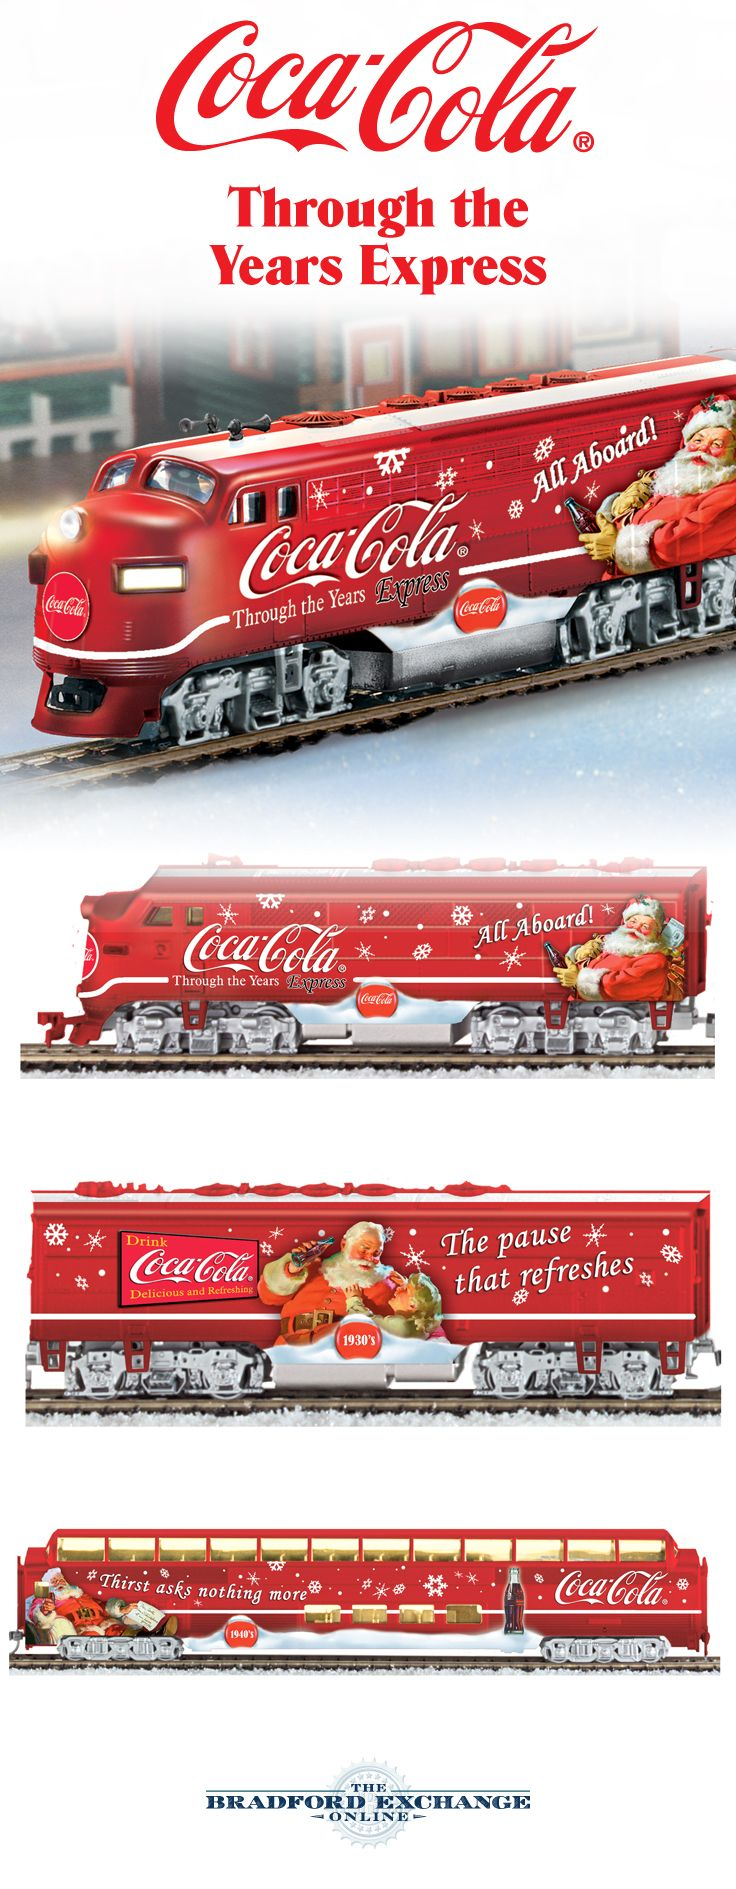 It's never too early to take a refreshing ride with this COCA-COLA train collection. All aboard for a great Christmas in July!